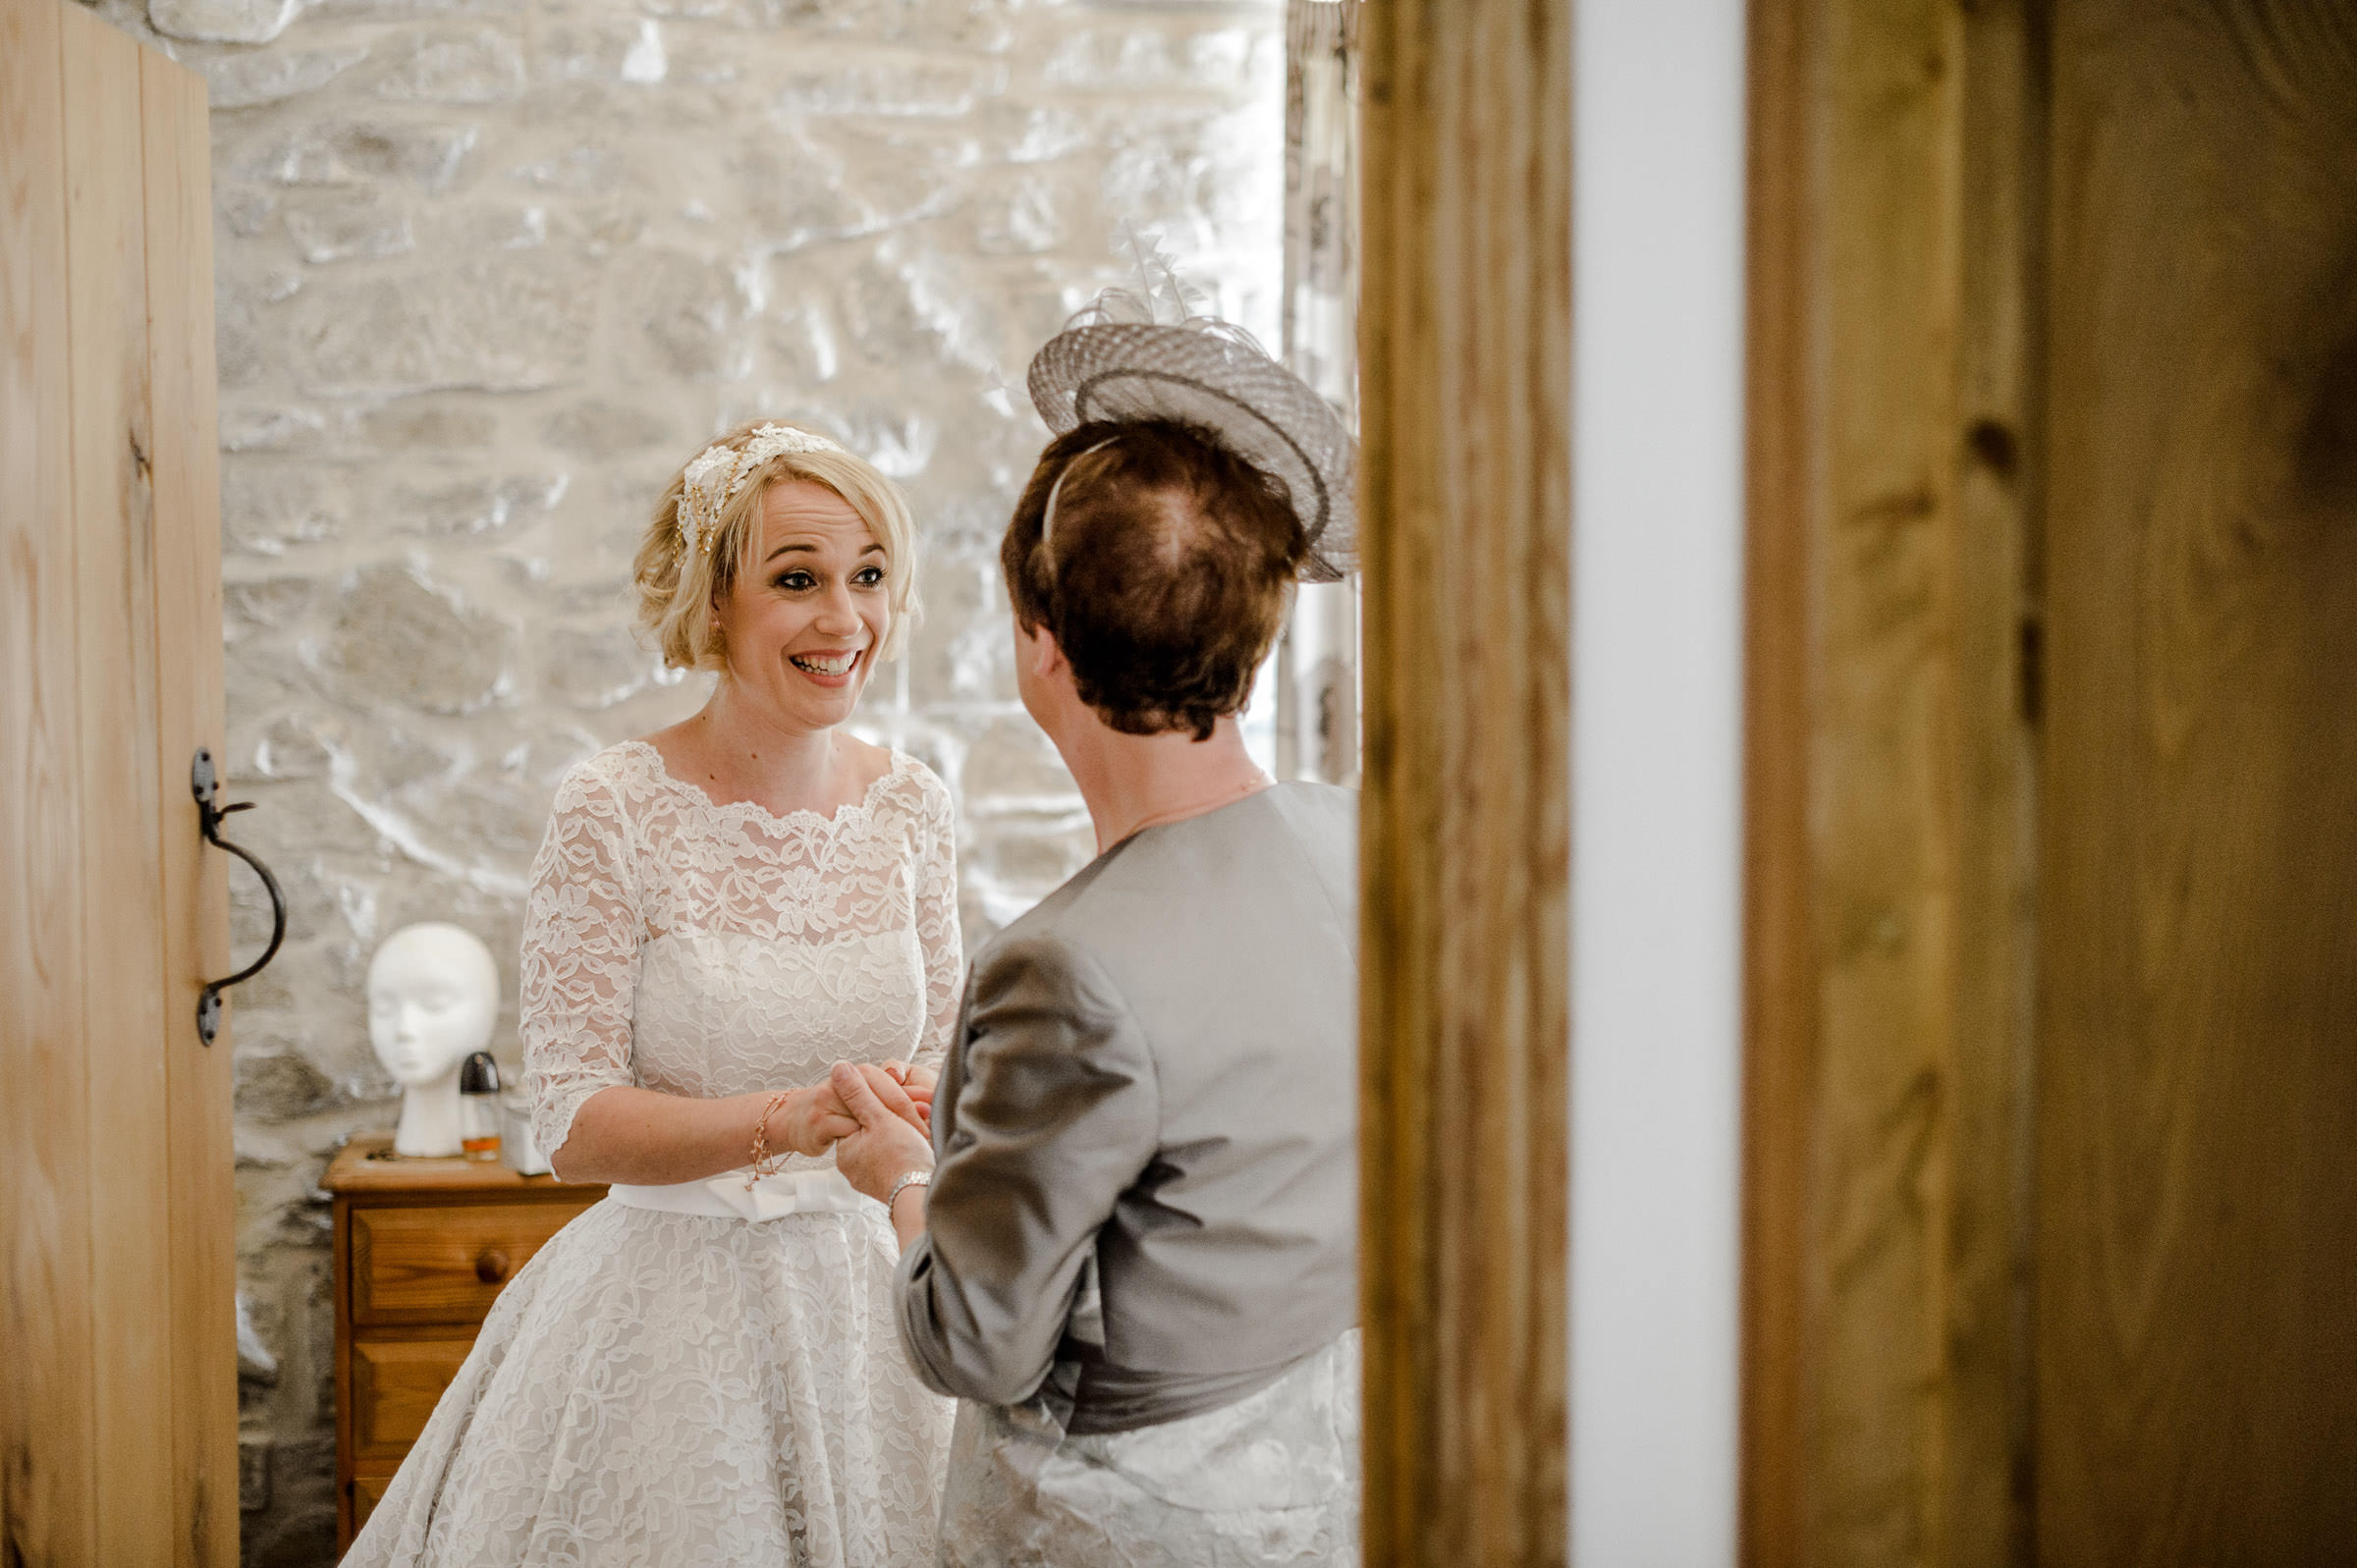 Reportage Wedding Photography South Wales 022.jpg